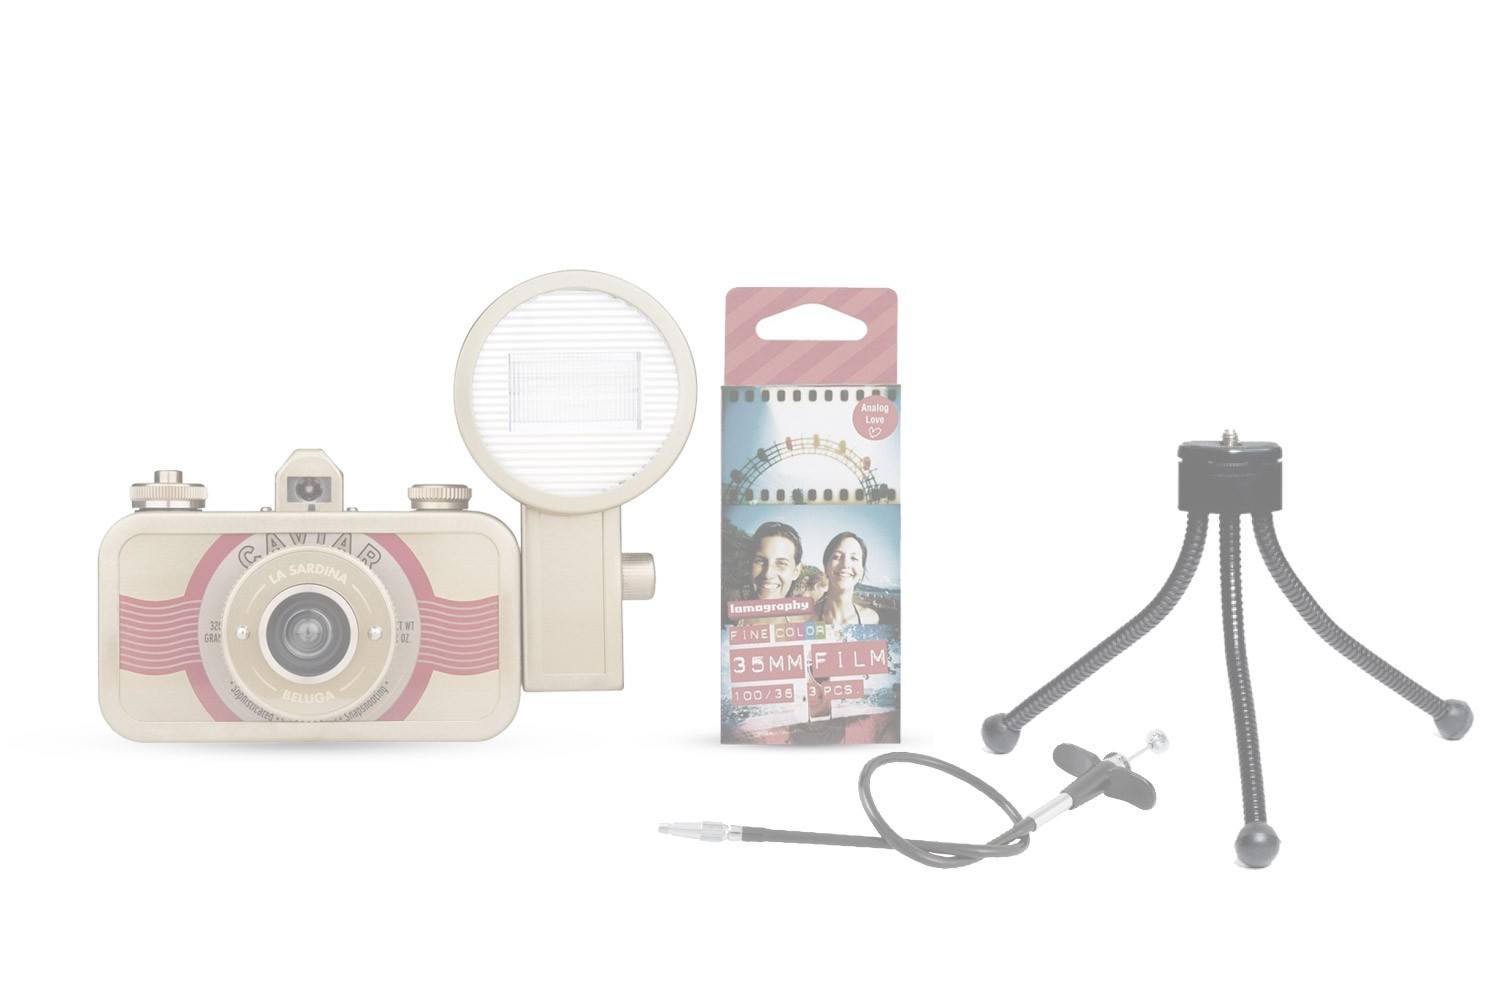 La Sardina Metal Edition Long Exposures Bundle